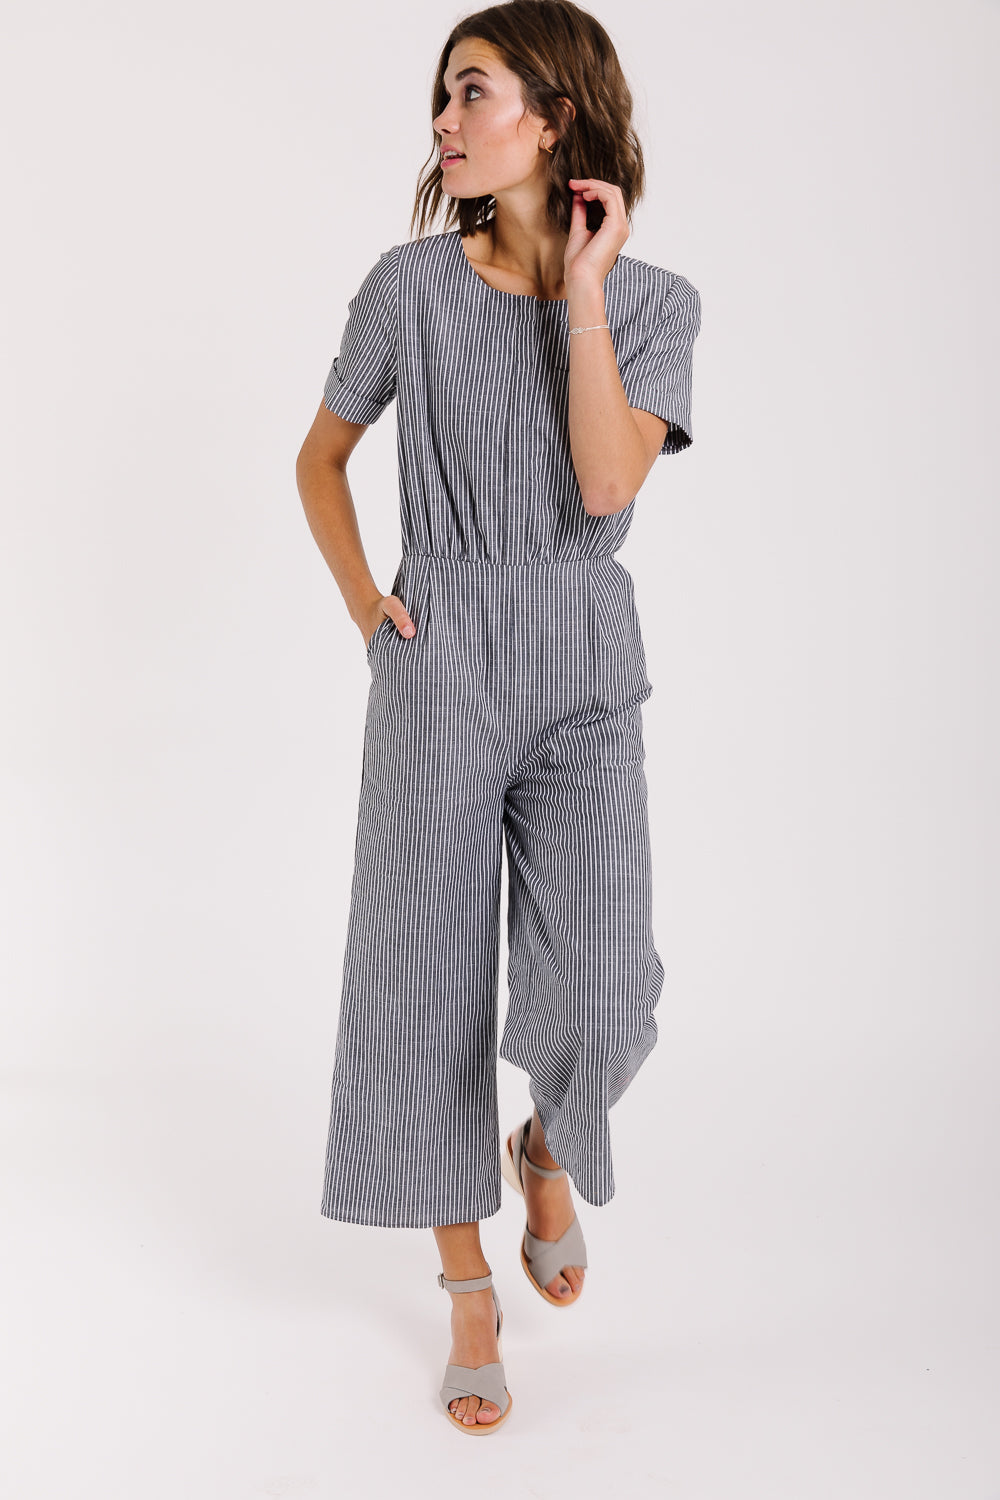 Piper & Scoot: The Tower Striped Jumpsuit in Charcoal